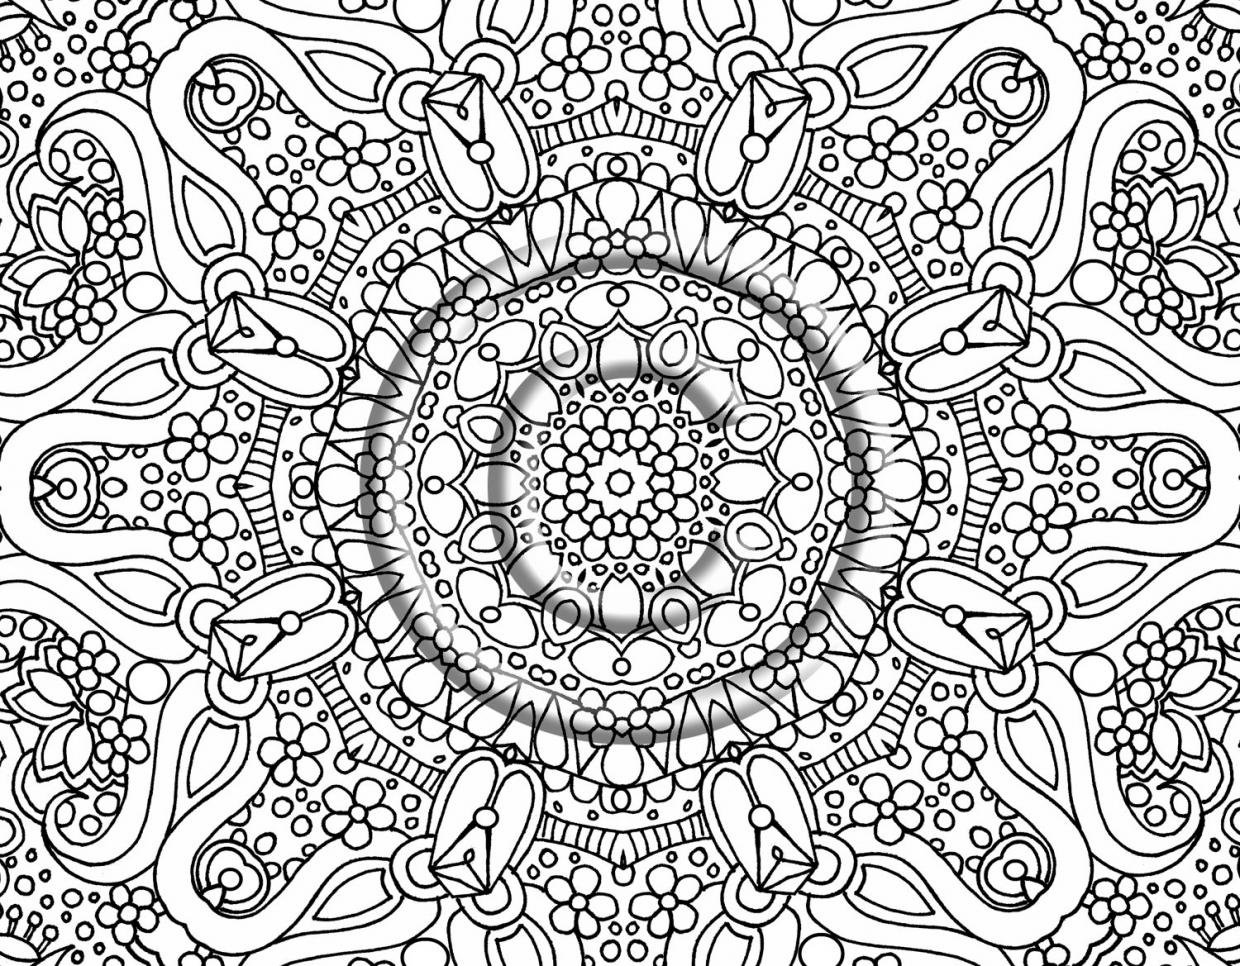 free complex coloring pages get this free complex coloring pages to print for adults pages complex free coloring